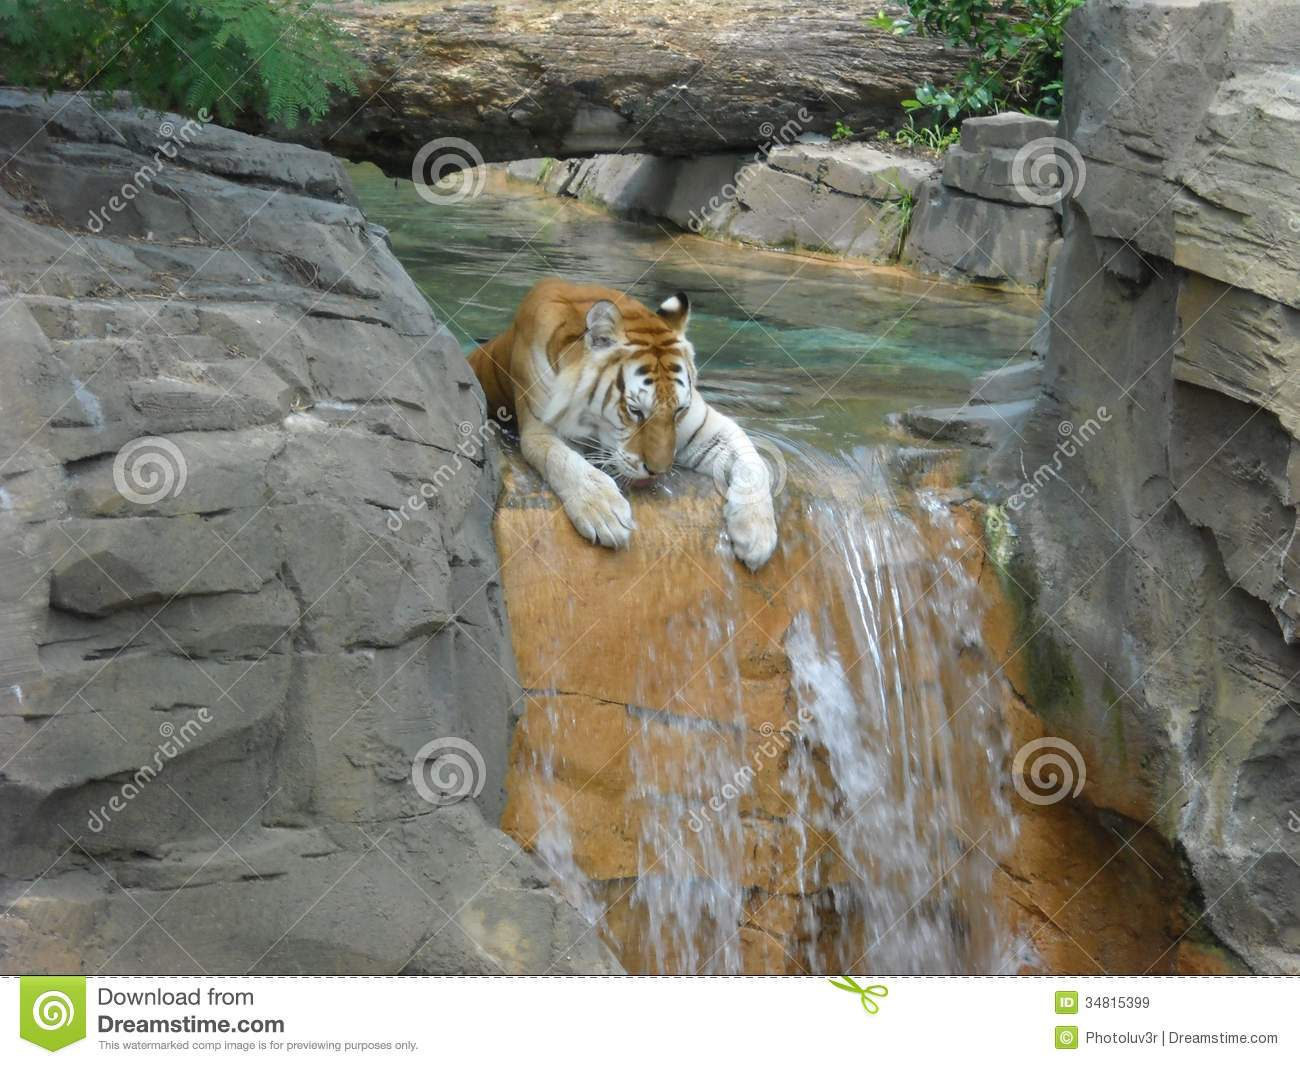 tiger on waterfall royalty free stock images - image: 34815399